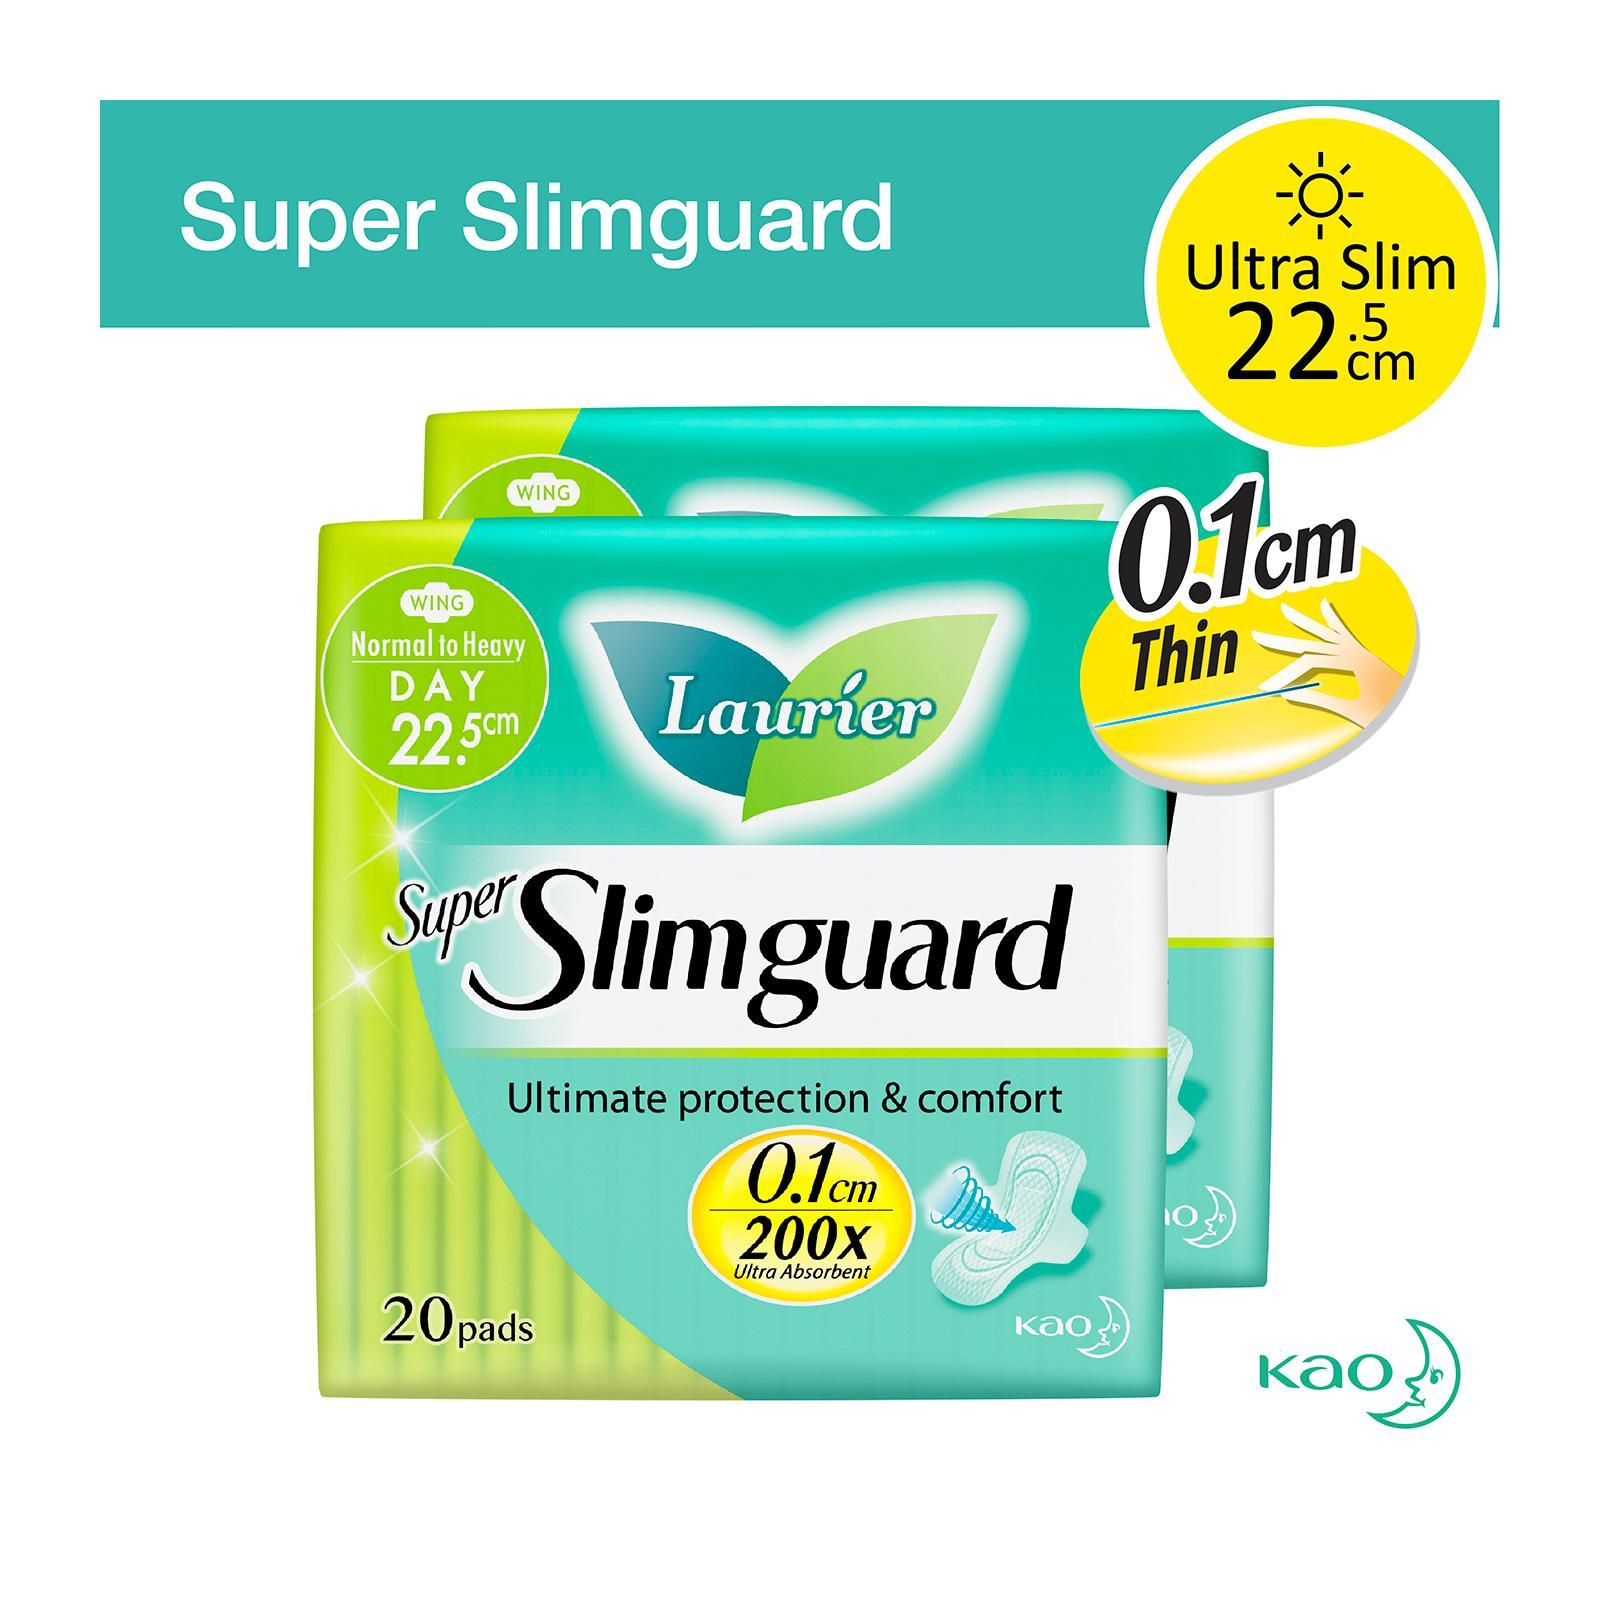 Laurier Super SlimGuard Day Wing Sanitary Pads 22.5cm